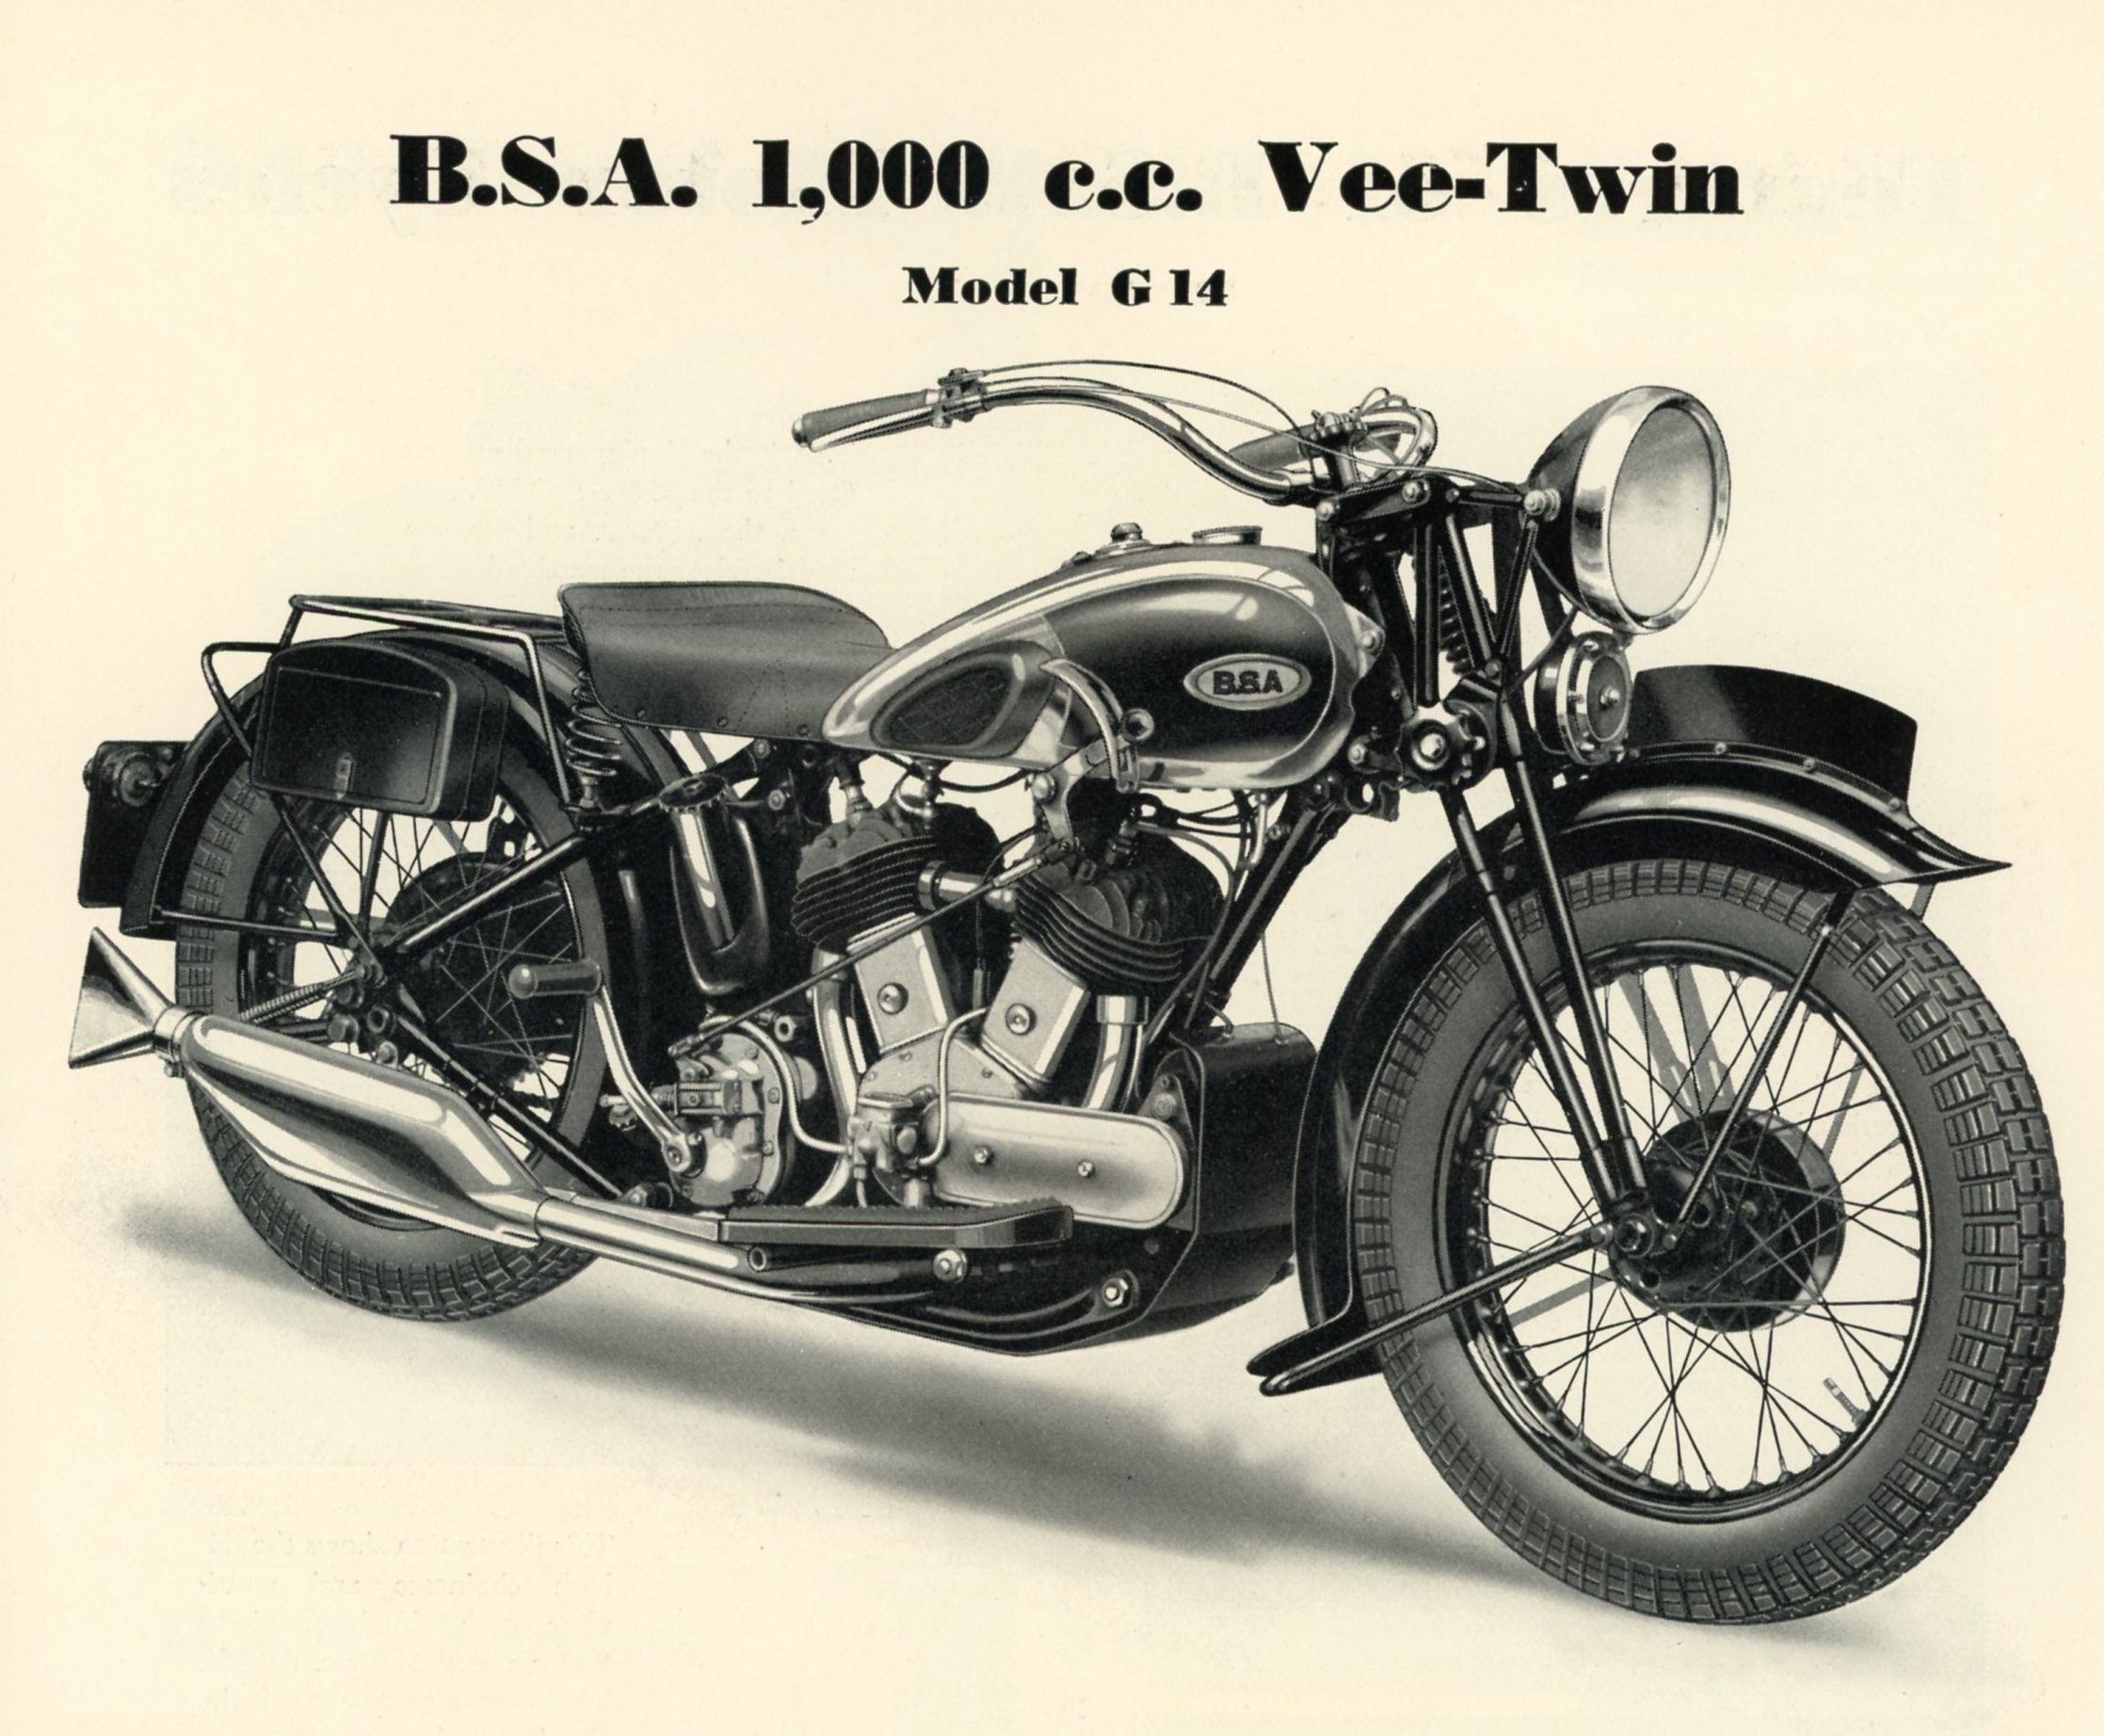 Pin By Charles Bartell On Bsa Motorcycles Vintage Motorcycle Posters Classic Motorcycles Motorcycle Posters